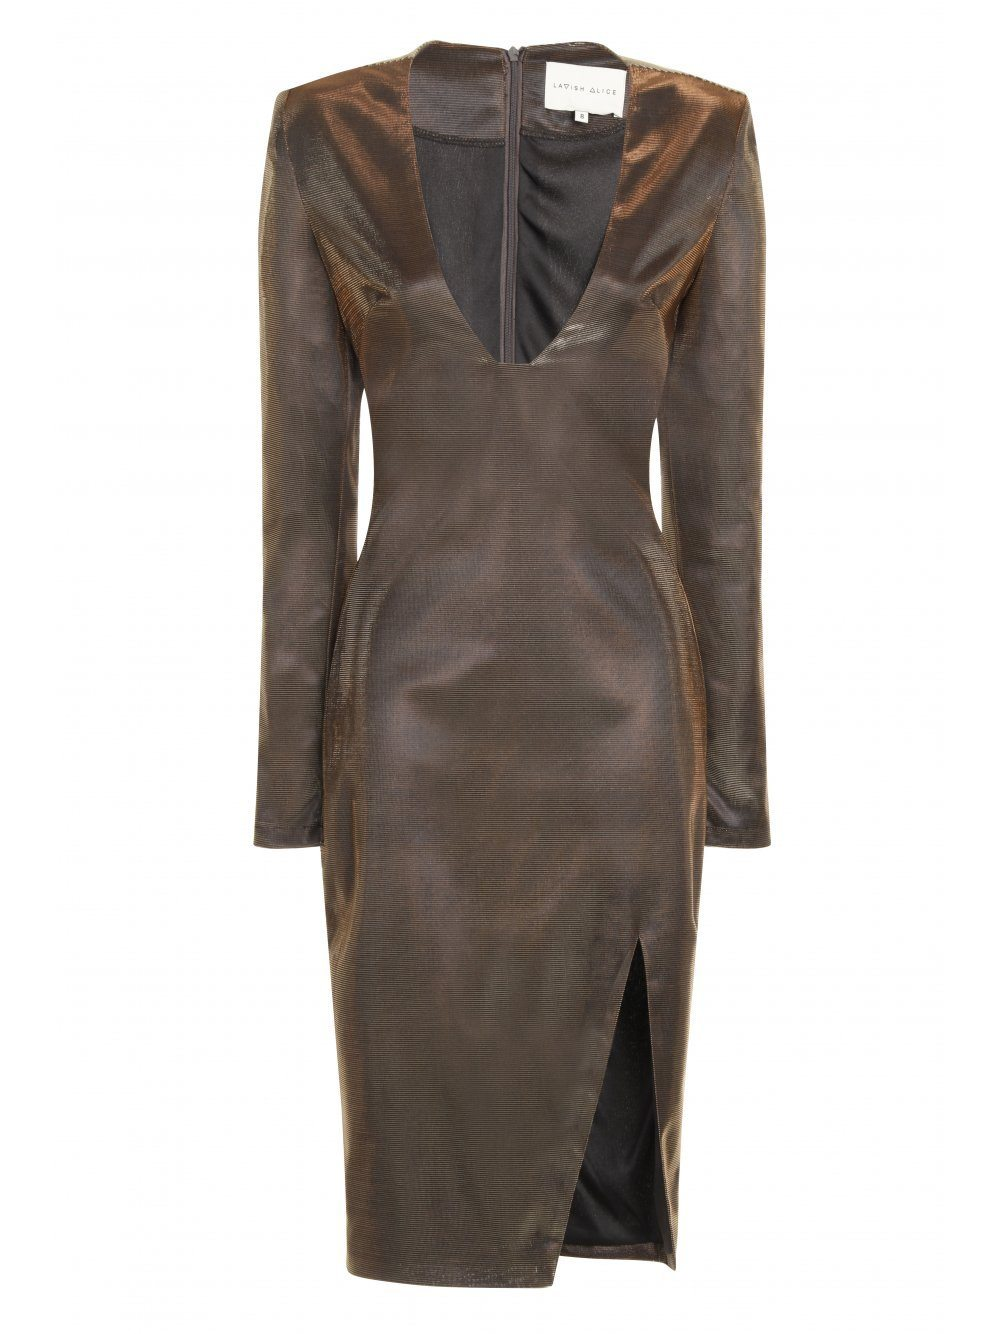 Black & Bronze Metallic Deep Plunge Side Split Midi Dress